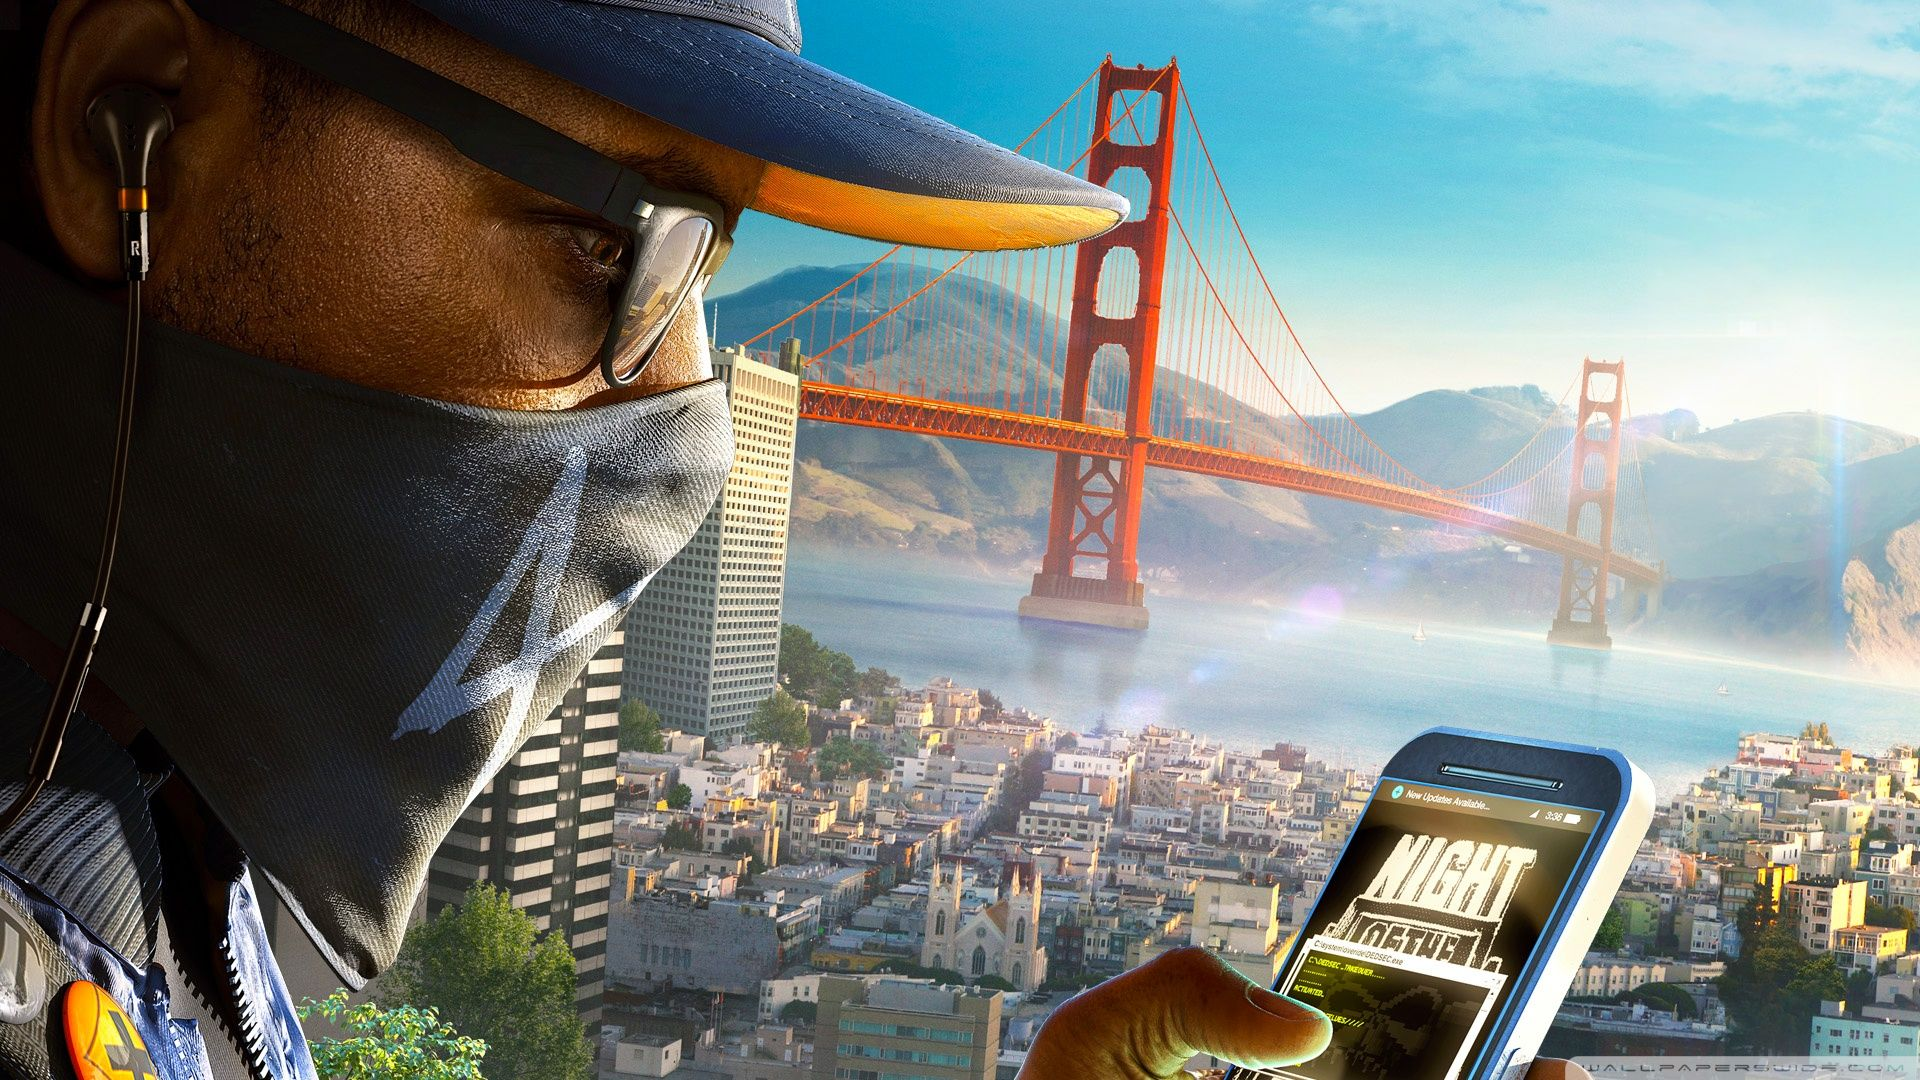 Watch Dogs Tablet Wallpapers Top Free Watch Dogs Tablet